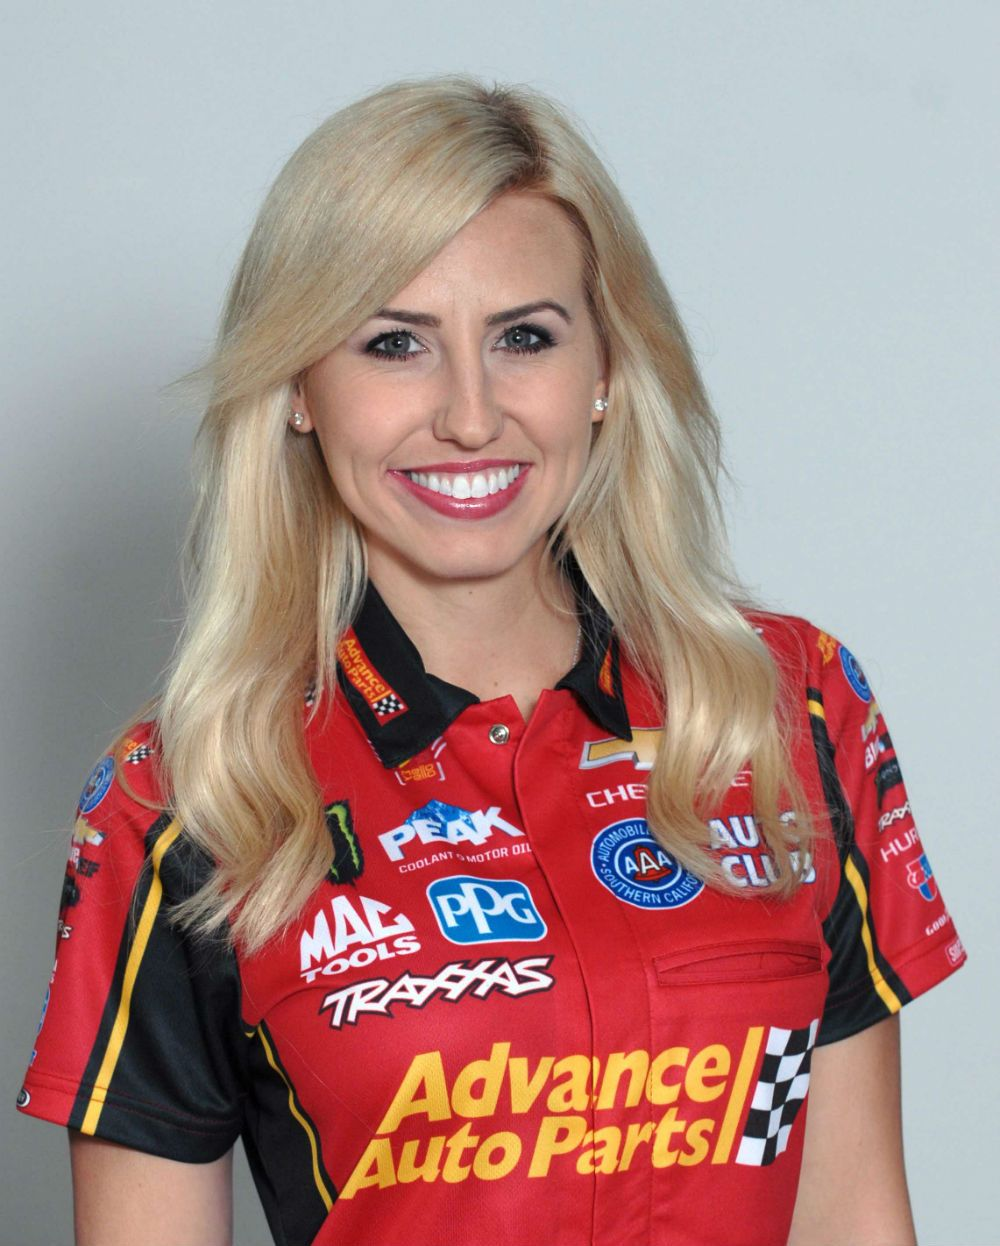 Pin by Scott Johnson on dress   Racing girl, Courtney force, Female racers